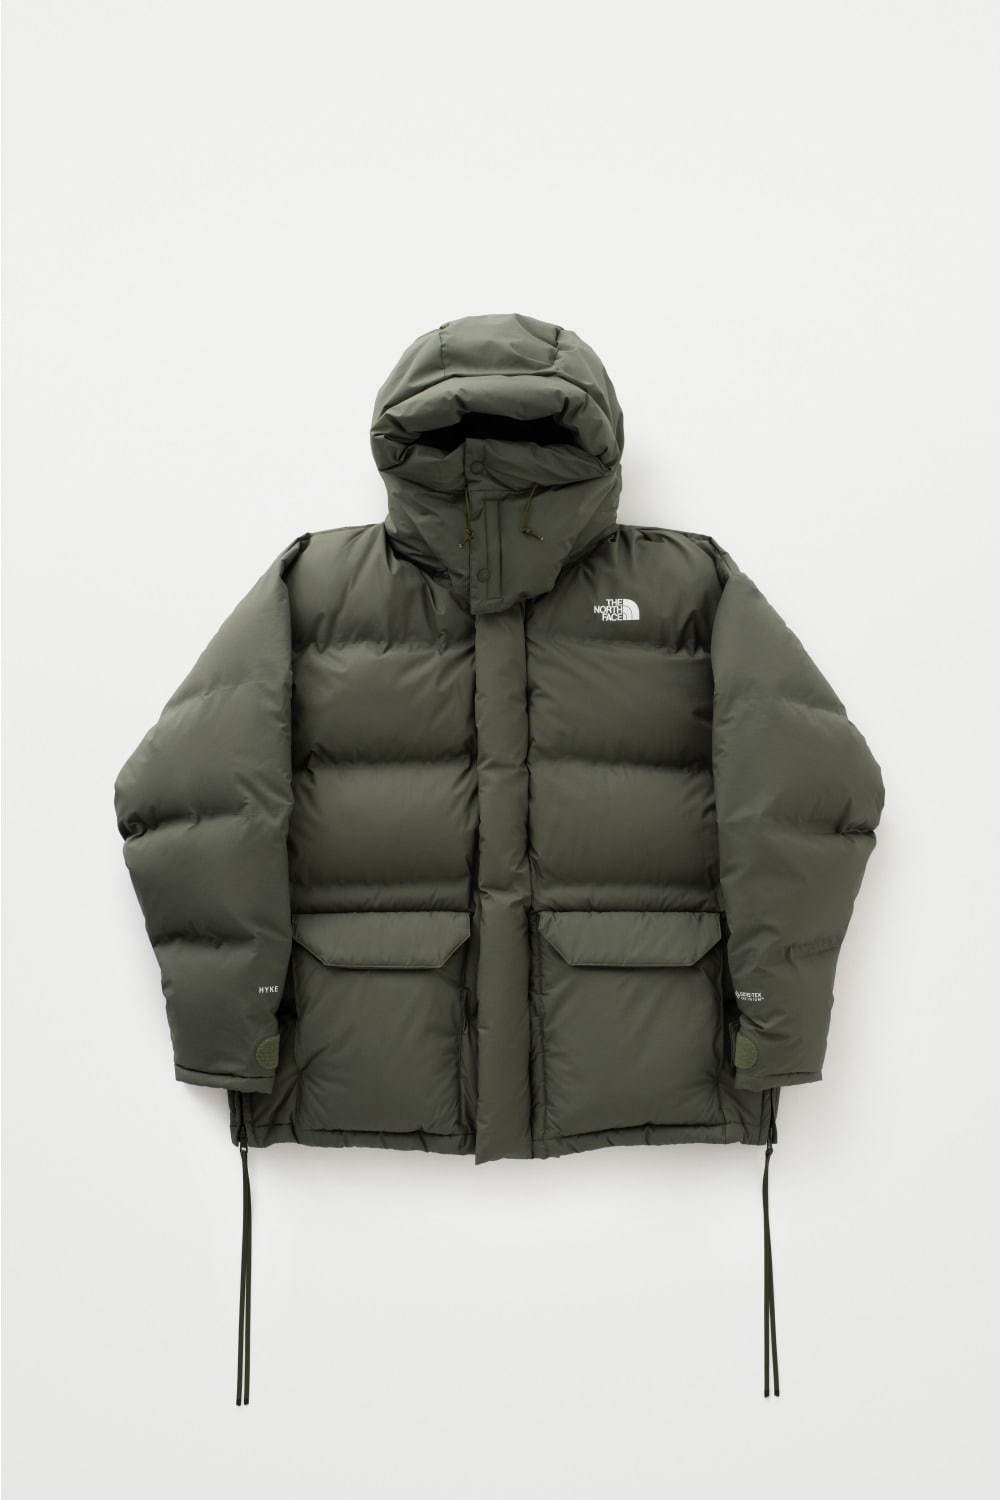 WS Big Down Jacket 90,000円<メンズ>